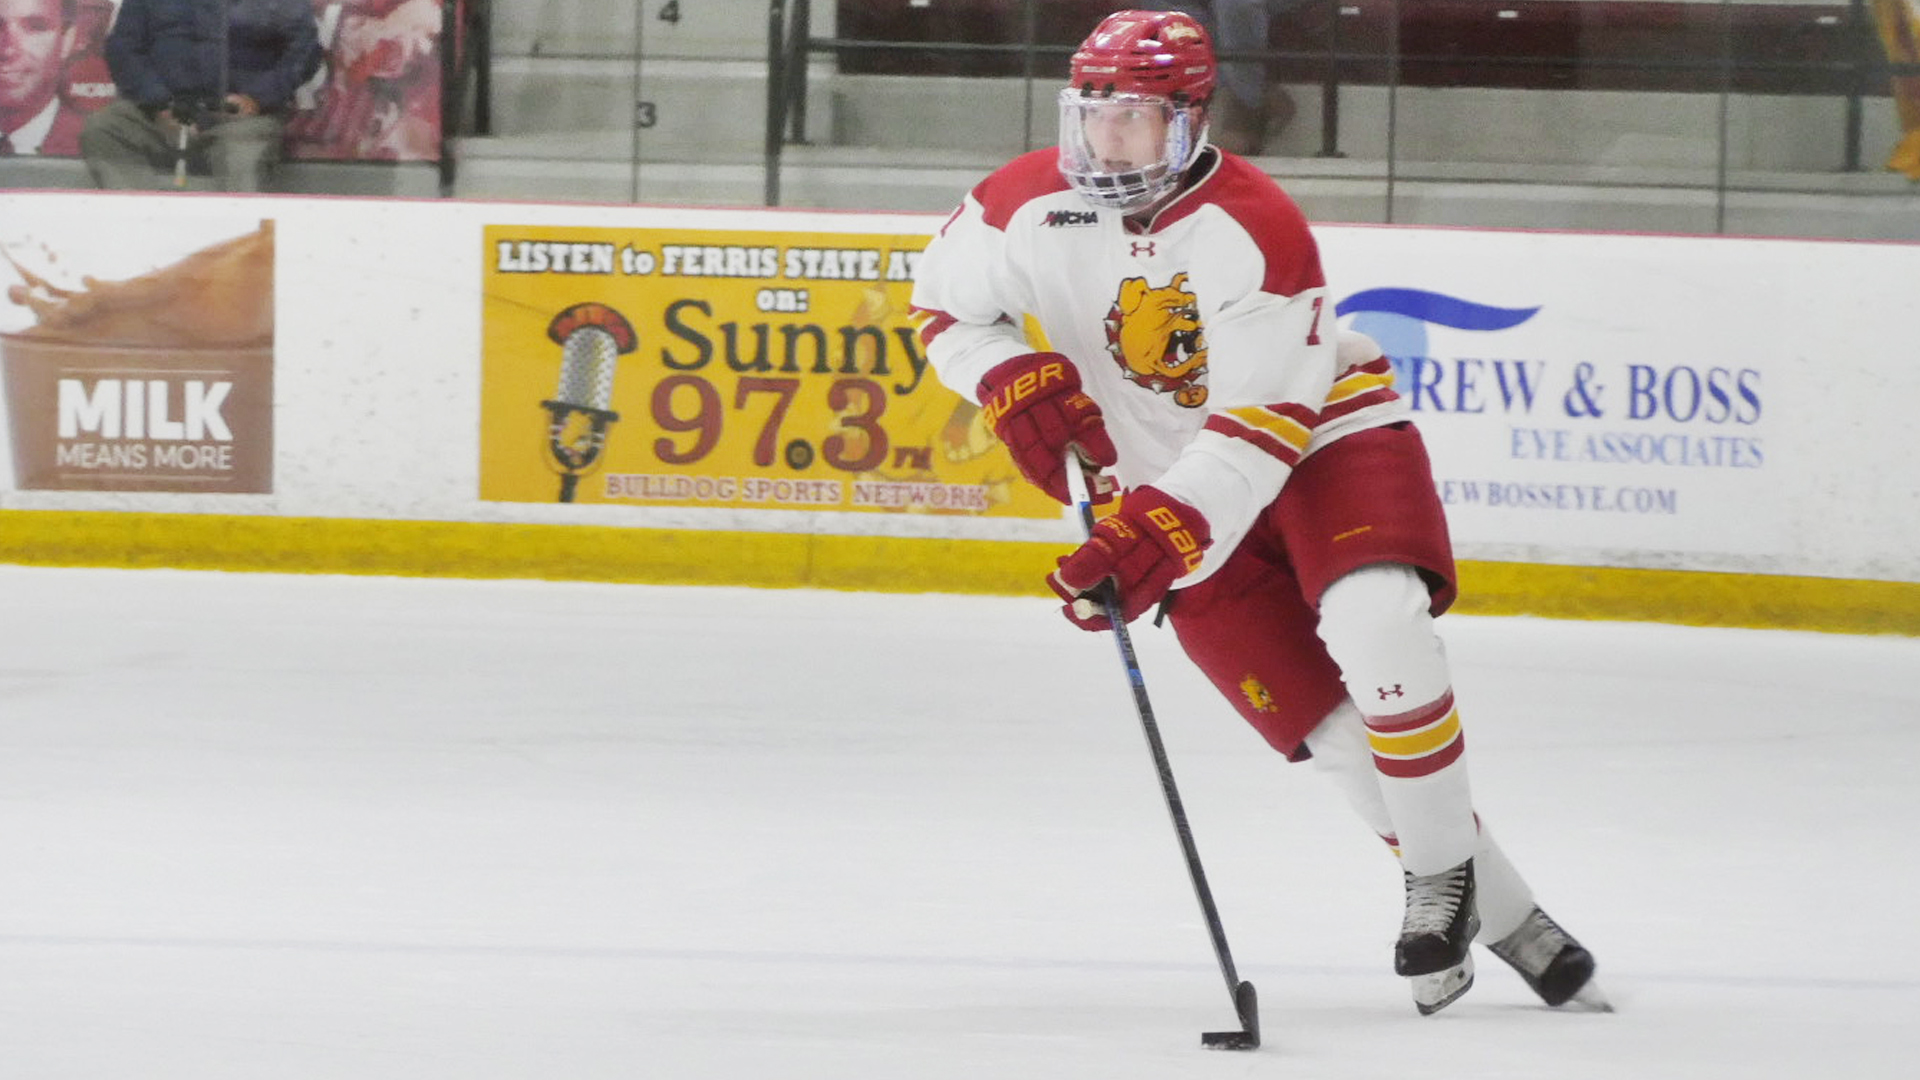 Ferris State Skates To Tie In Exhibition Play Against Waterloo